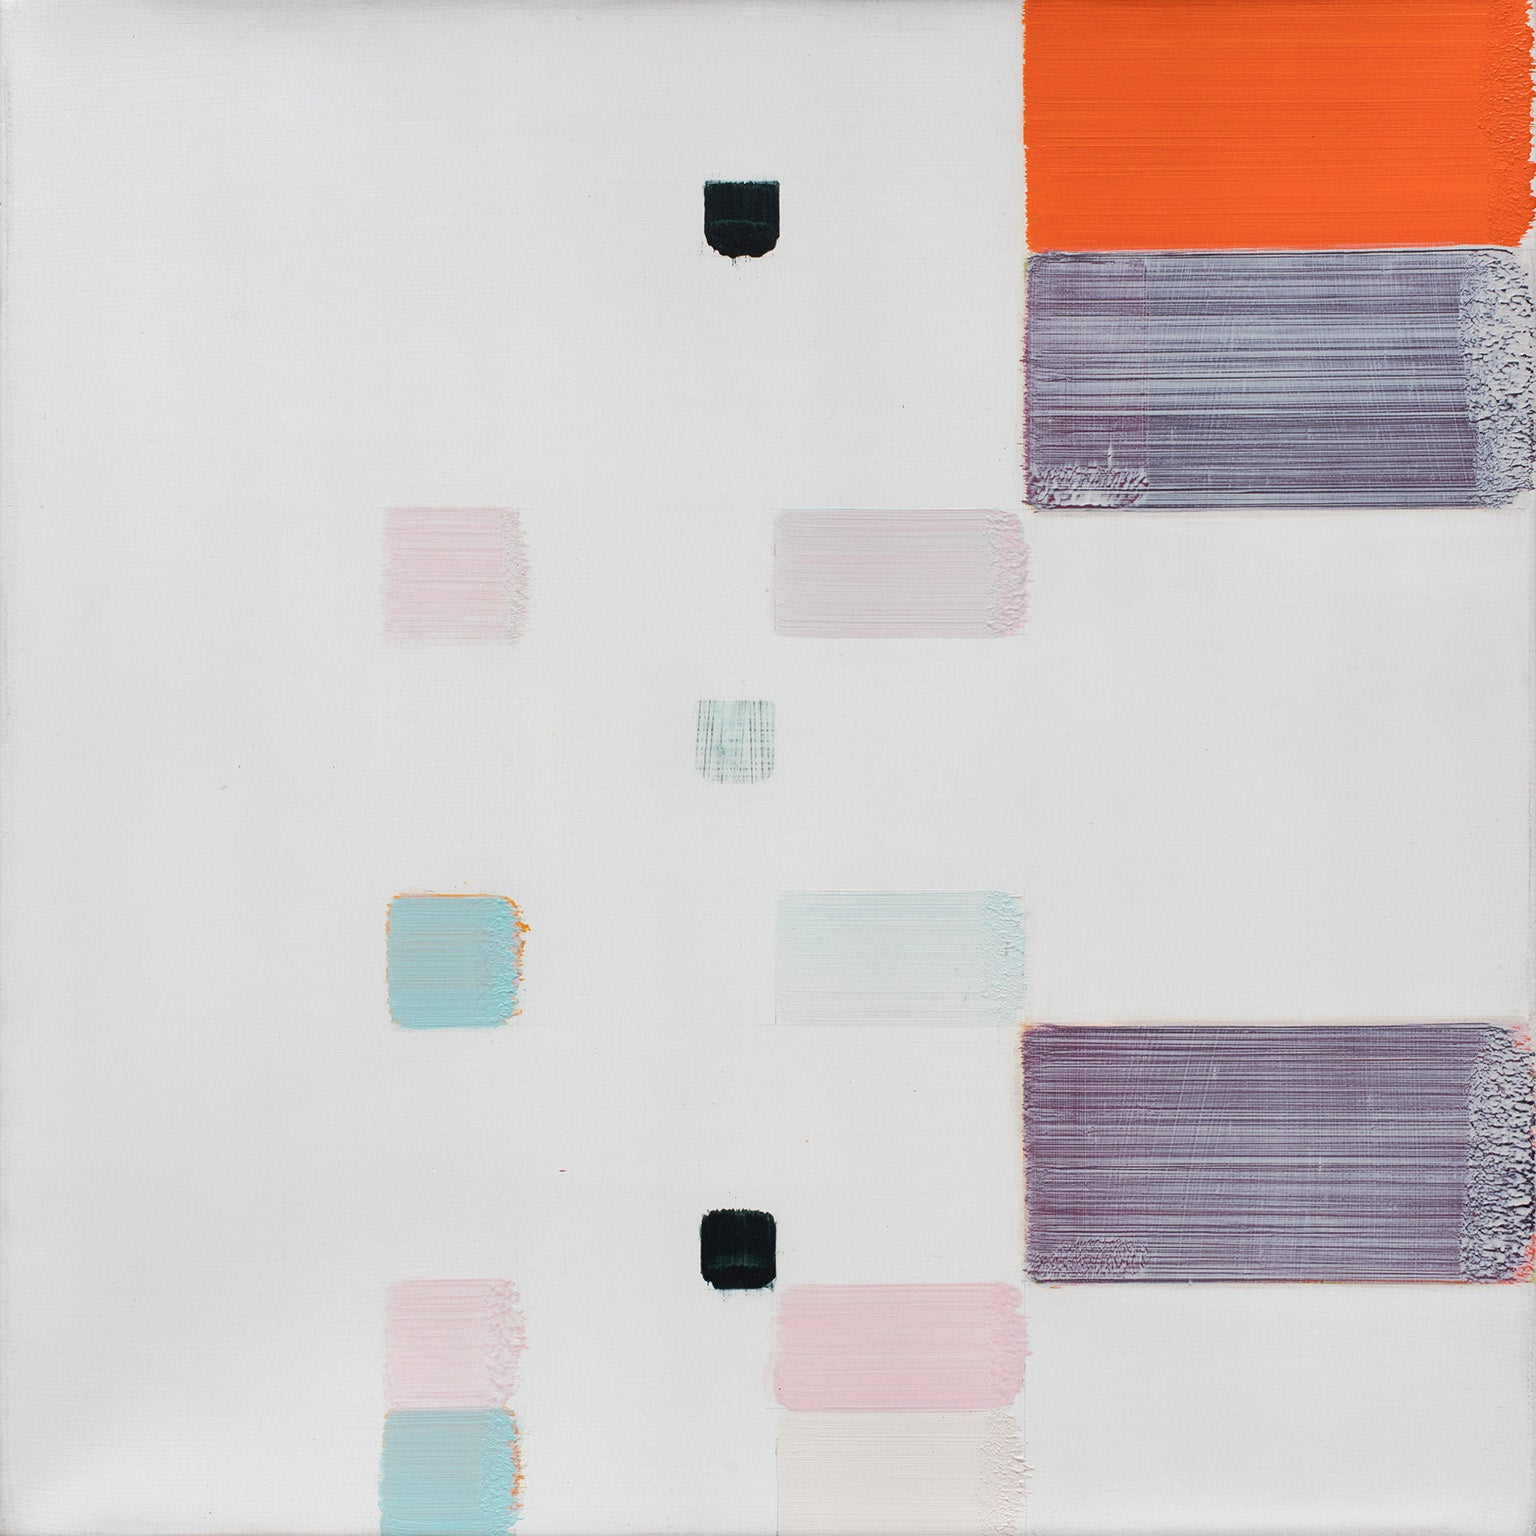 Untitled (2) - Geometric Abstract Oil Painting with Purple and Orange